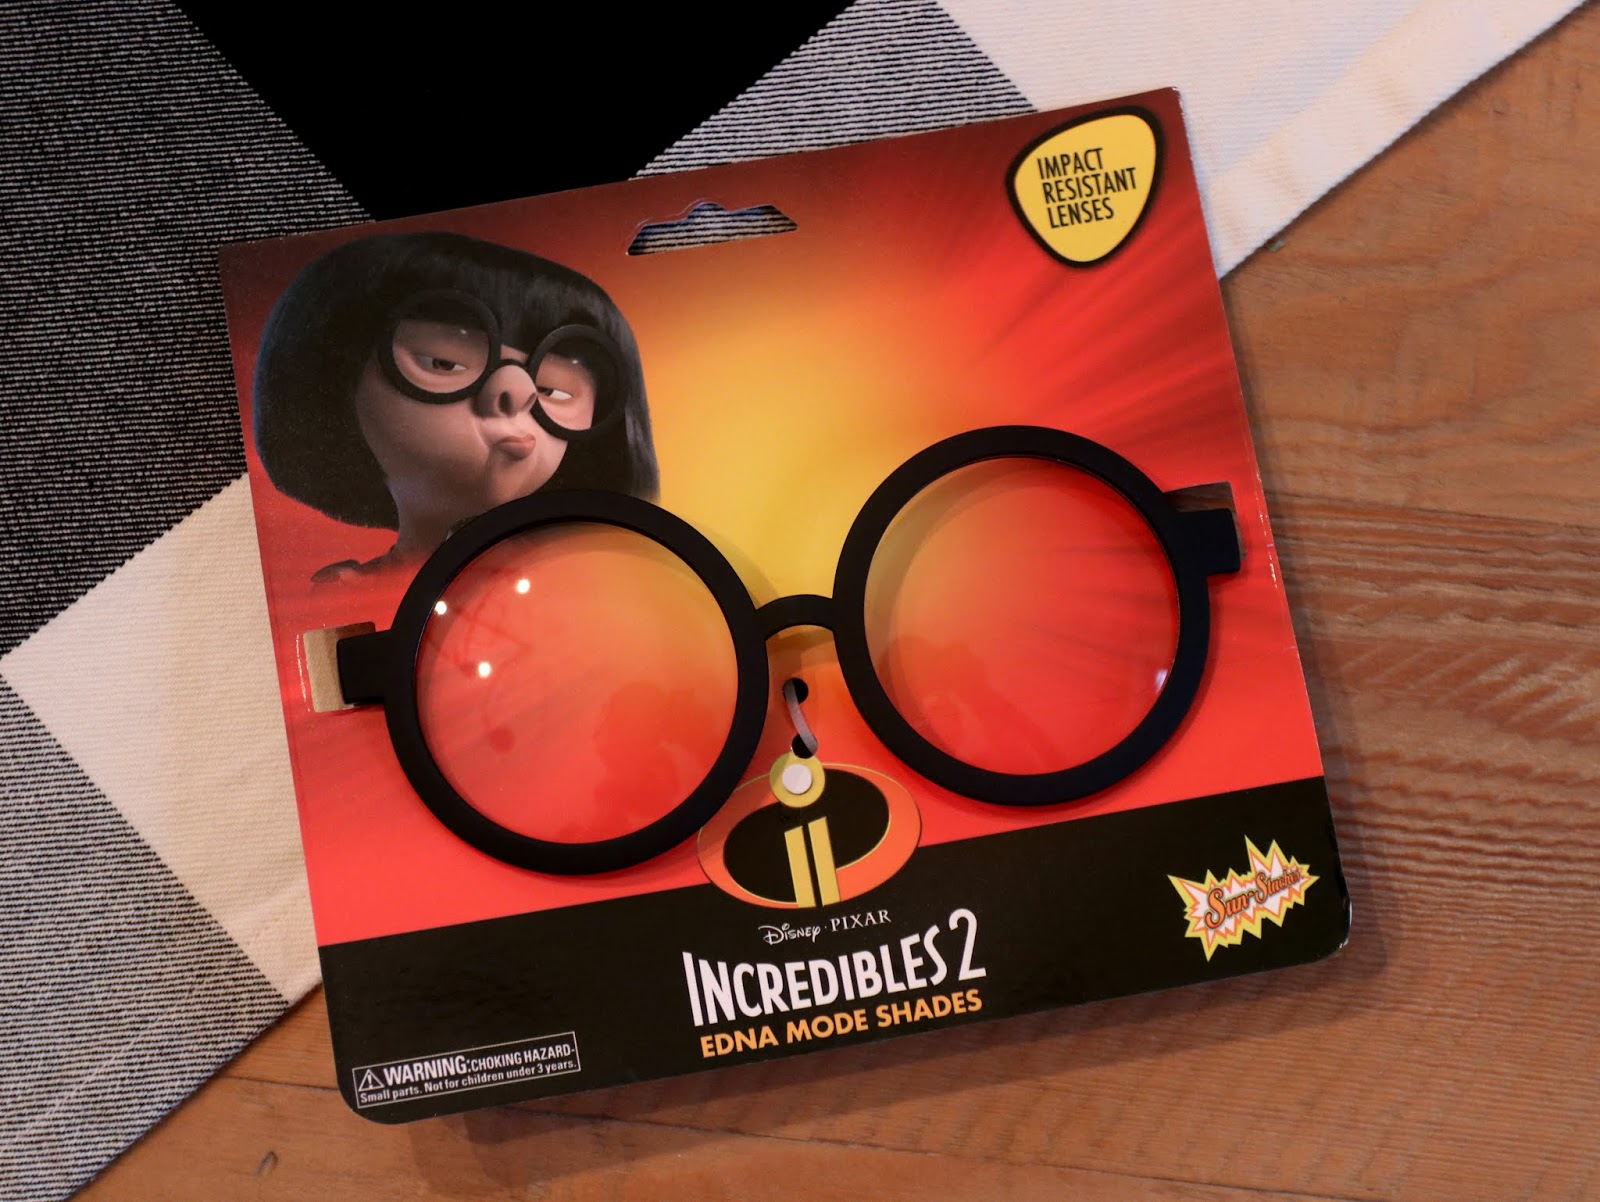 sun-staches edna mode shades glasses